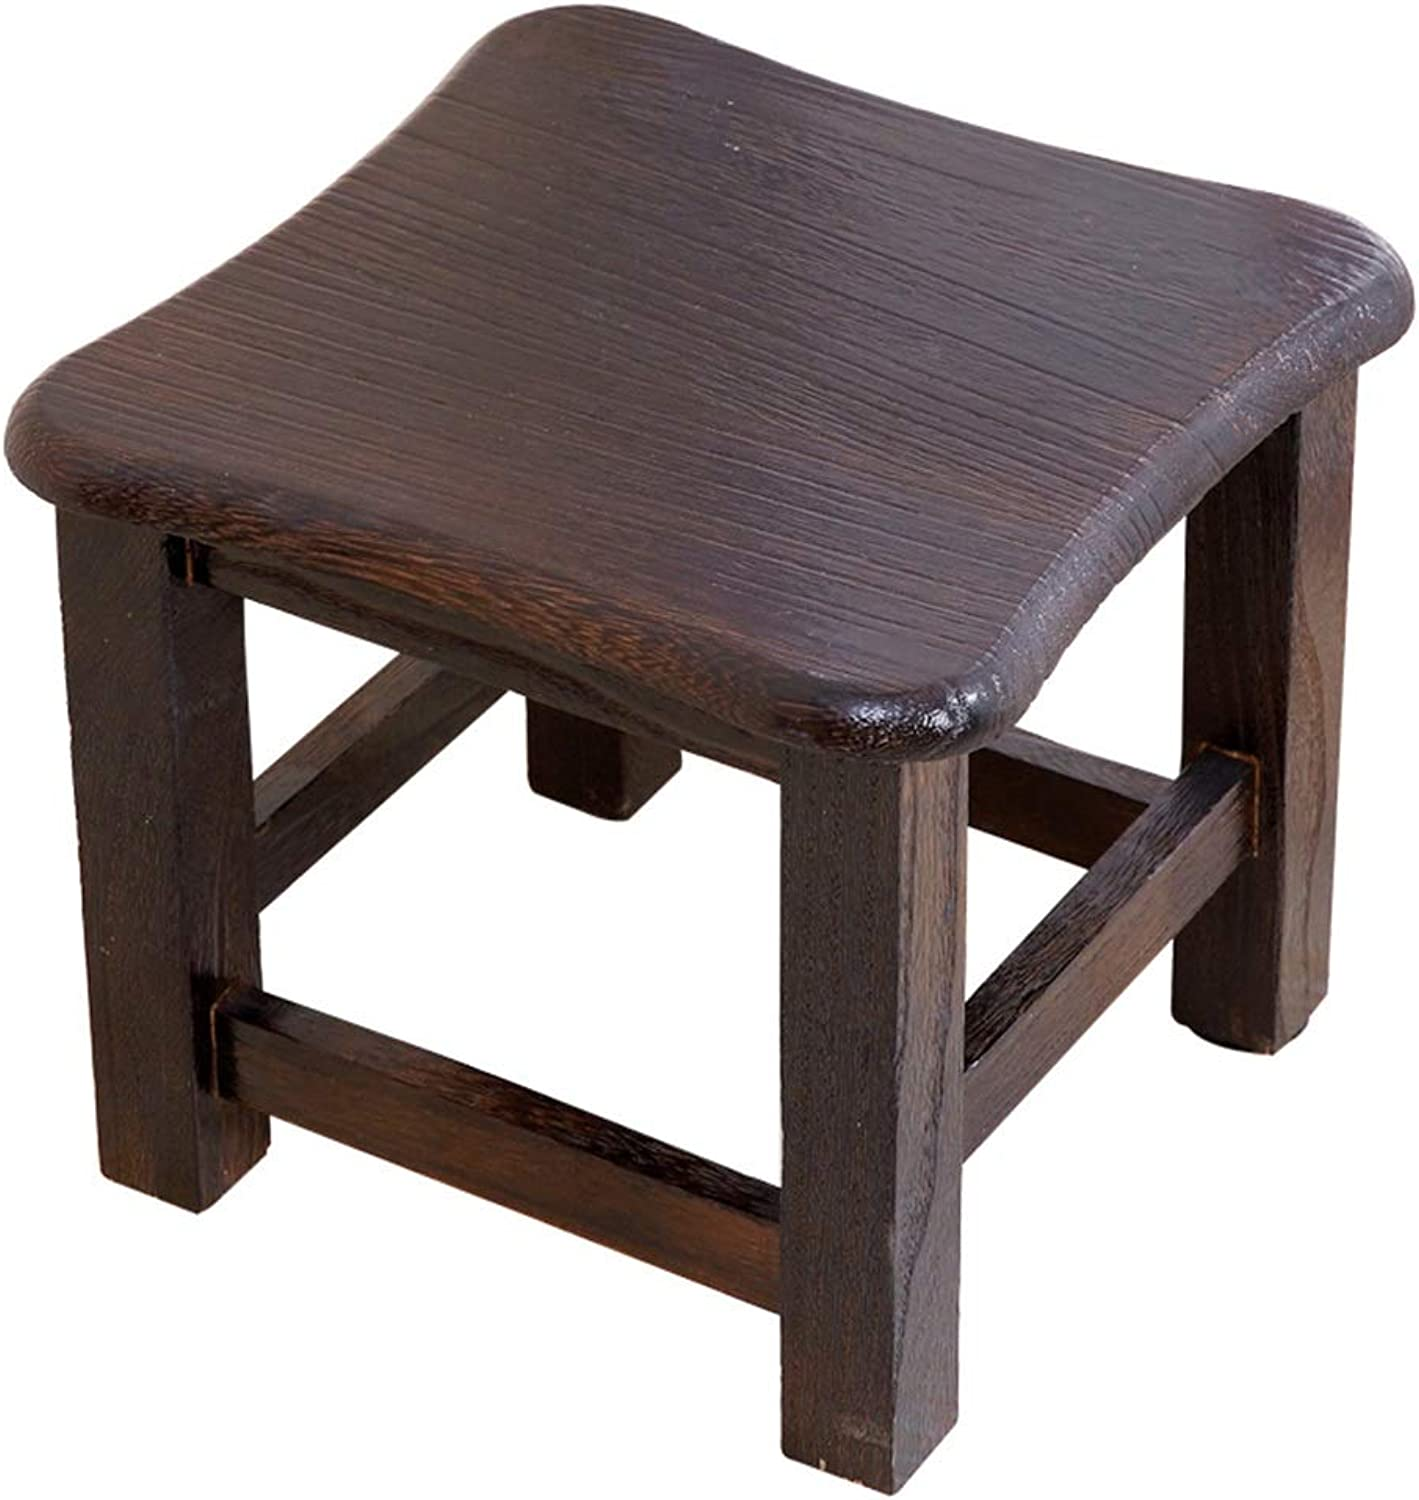 Solid Wood Stool Small Bench Change shoes Bench Living Room Coffee Table Stool Light and Strong (color   B)